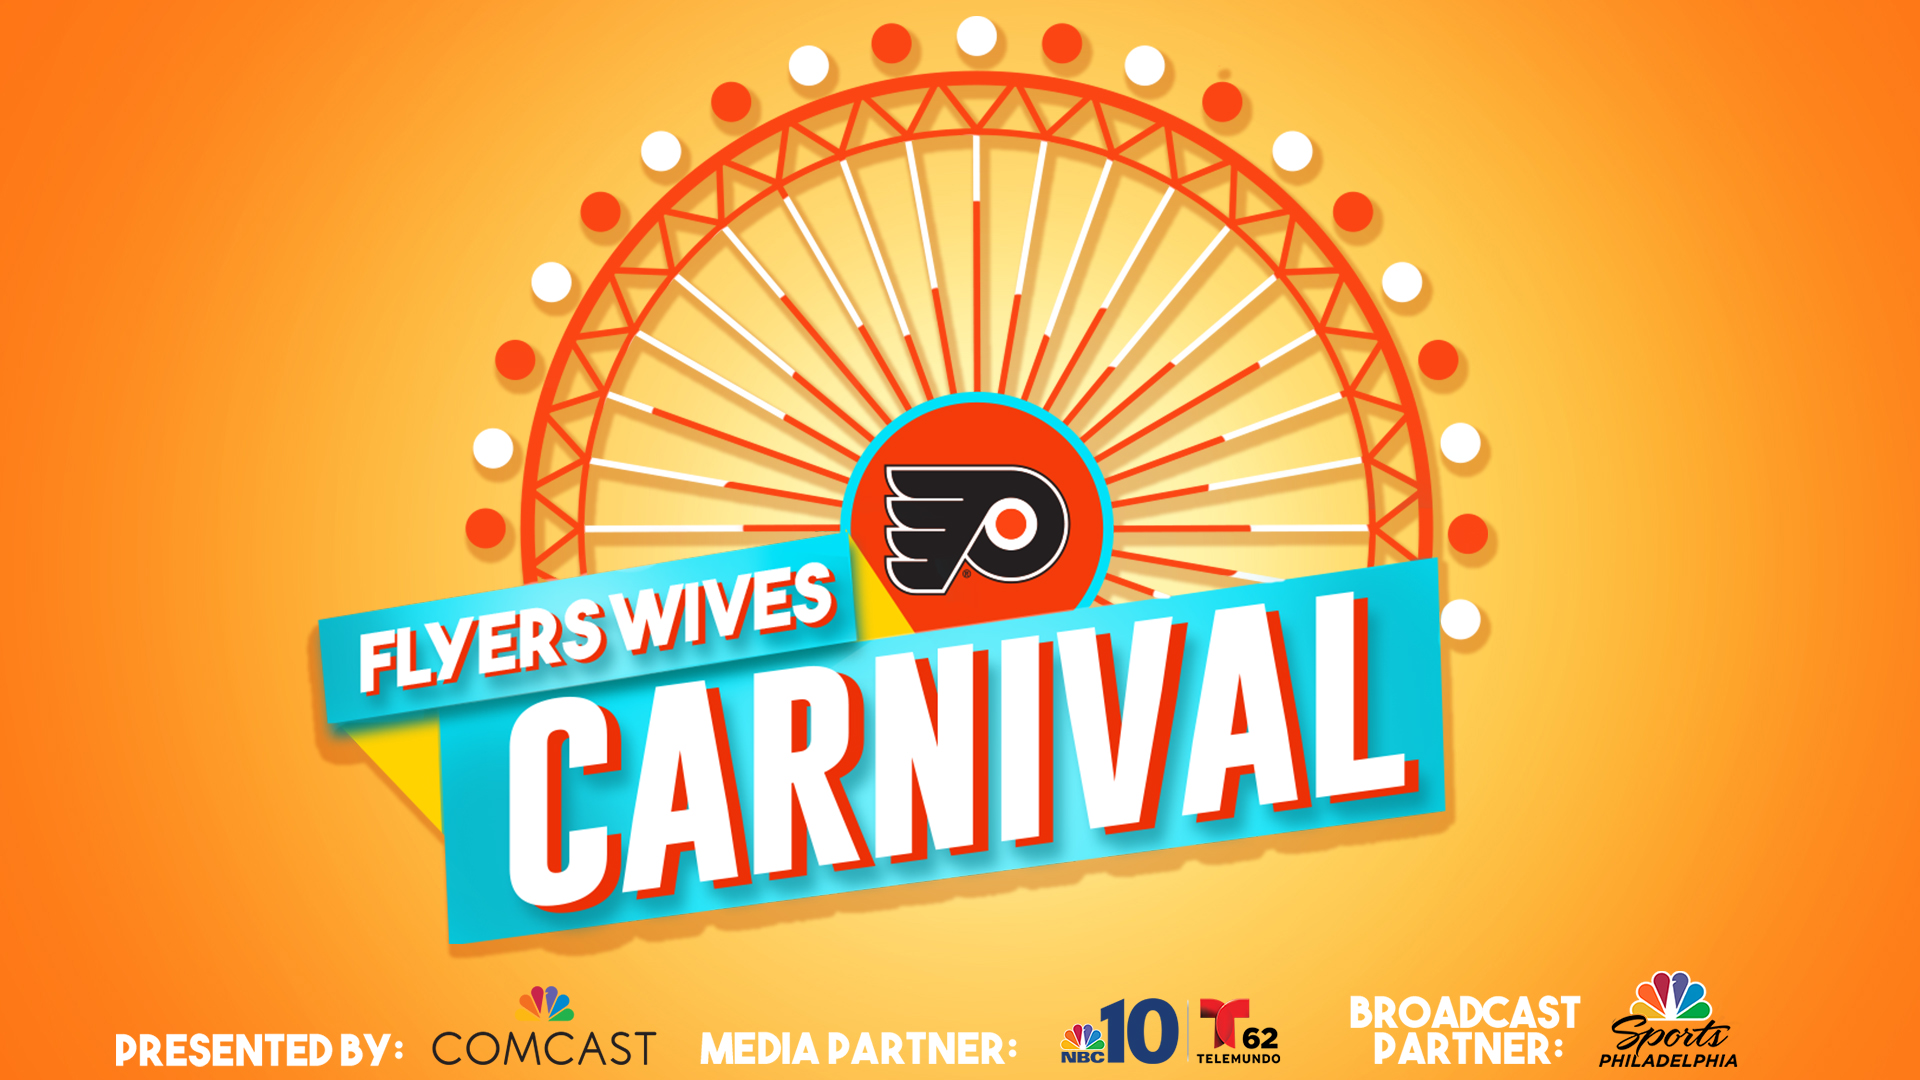 flyers wives carnival set for sunday november 19th at wells fargo